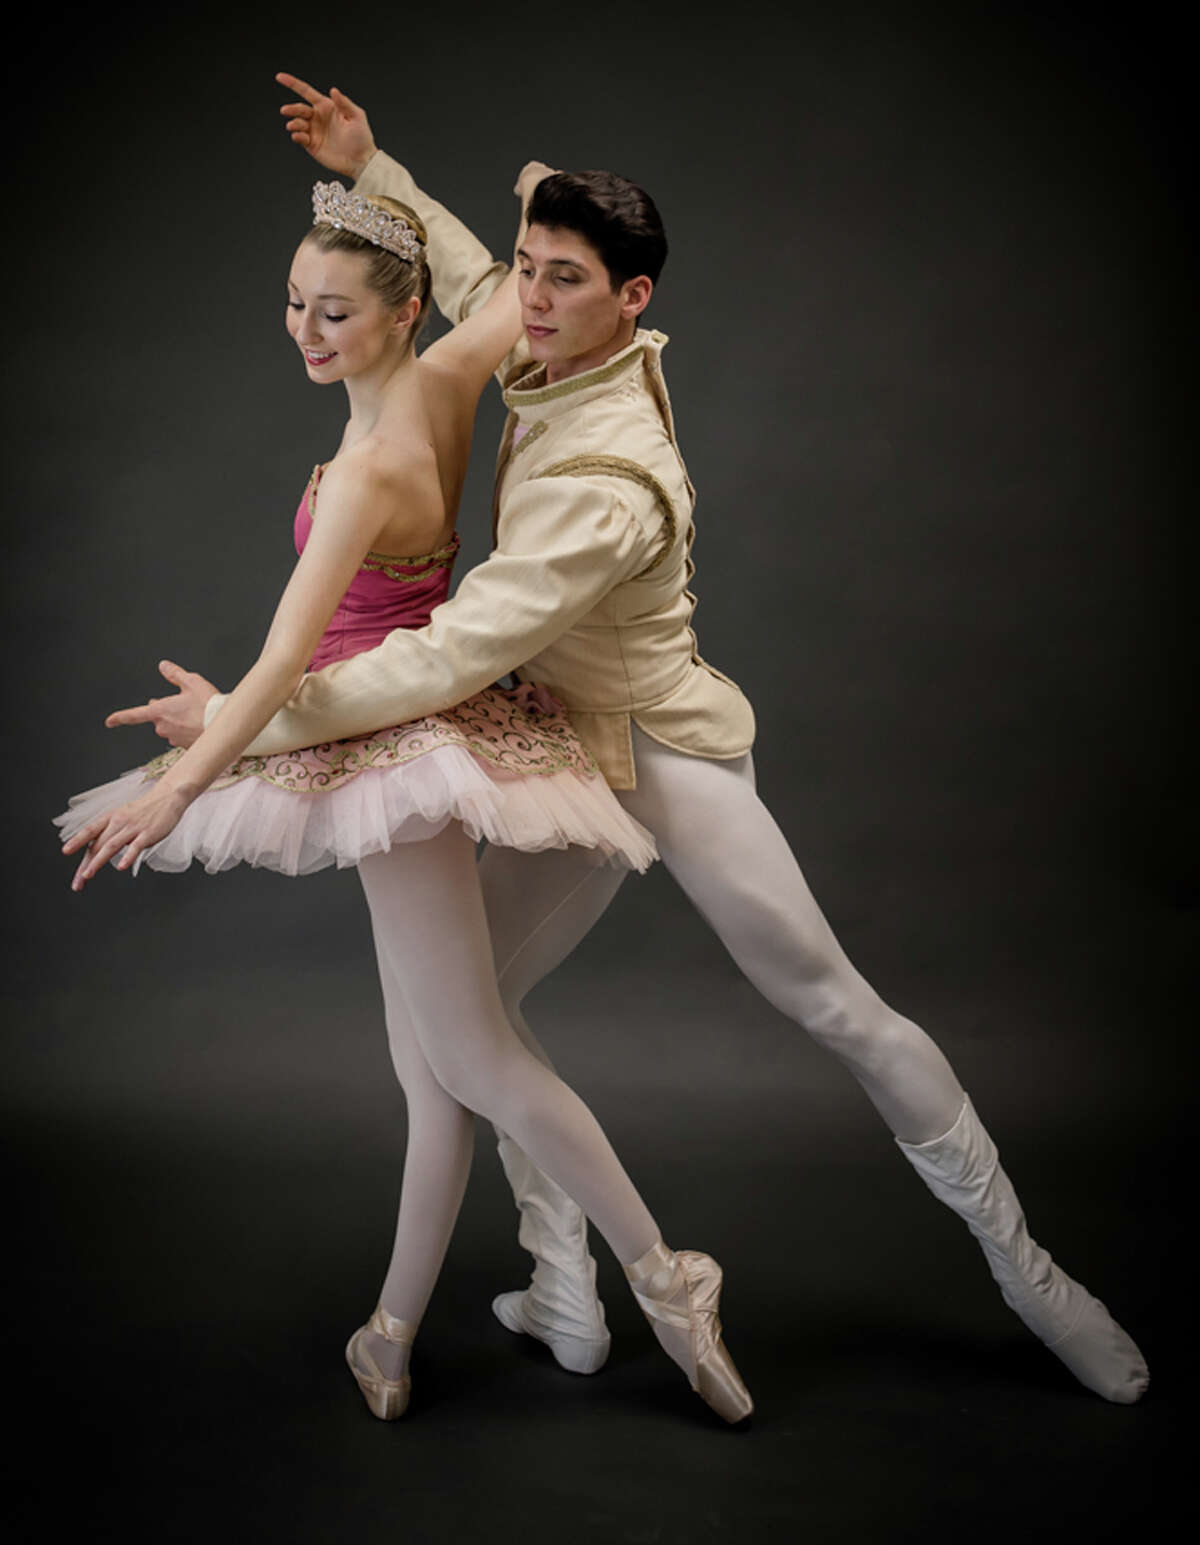 Rose Engel, as The Sugar Plum Fairy and Kenny Corrigan, as The Cavalier, dance in another photo of the two doing a another dance routine. - Contributed photo